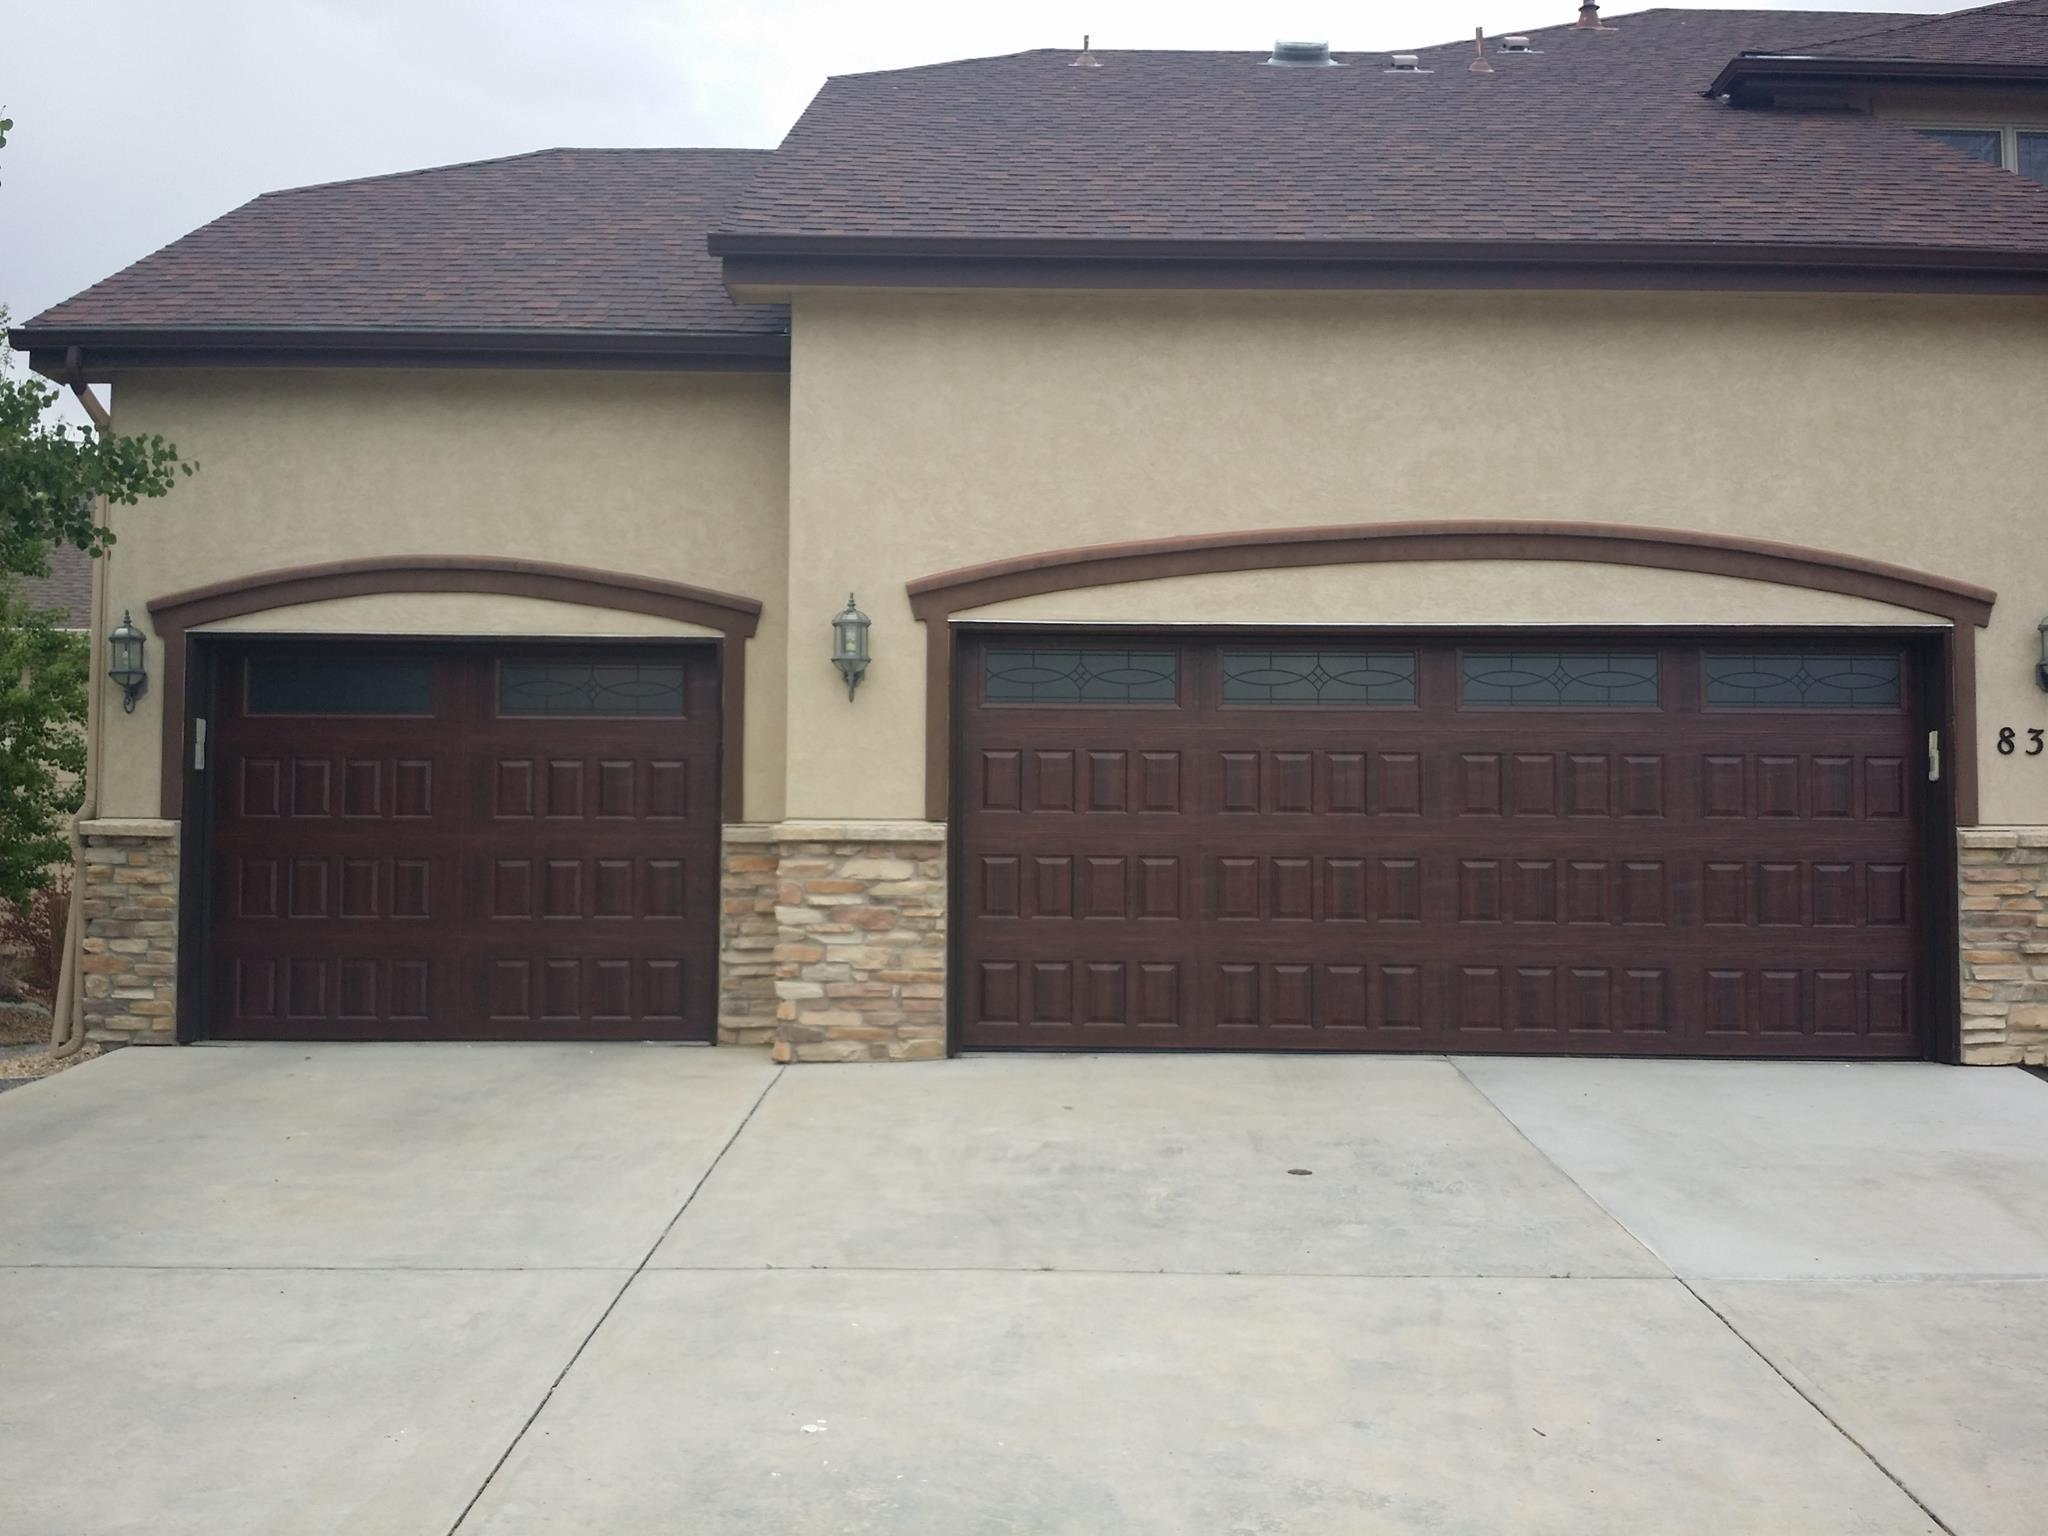 Grizzly garage door service for Grizzly garage door greeley co